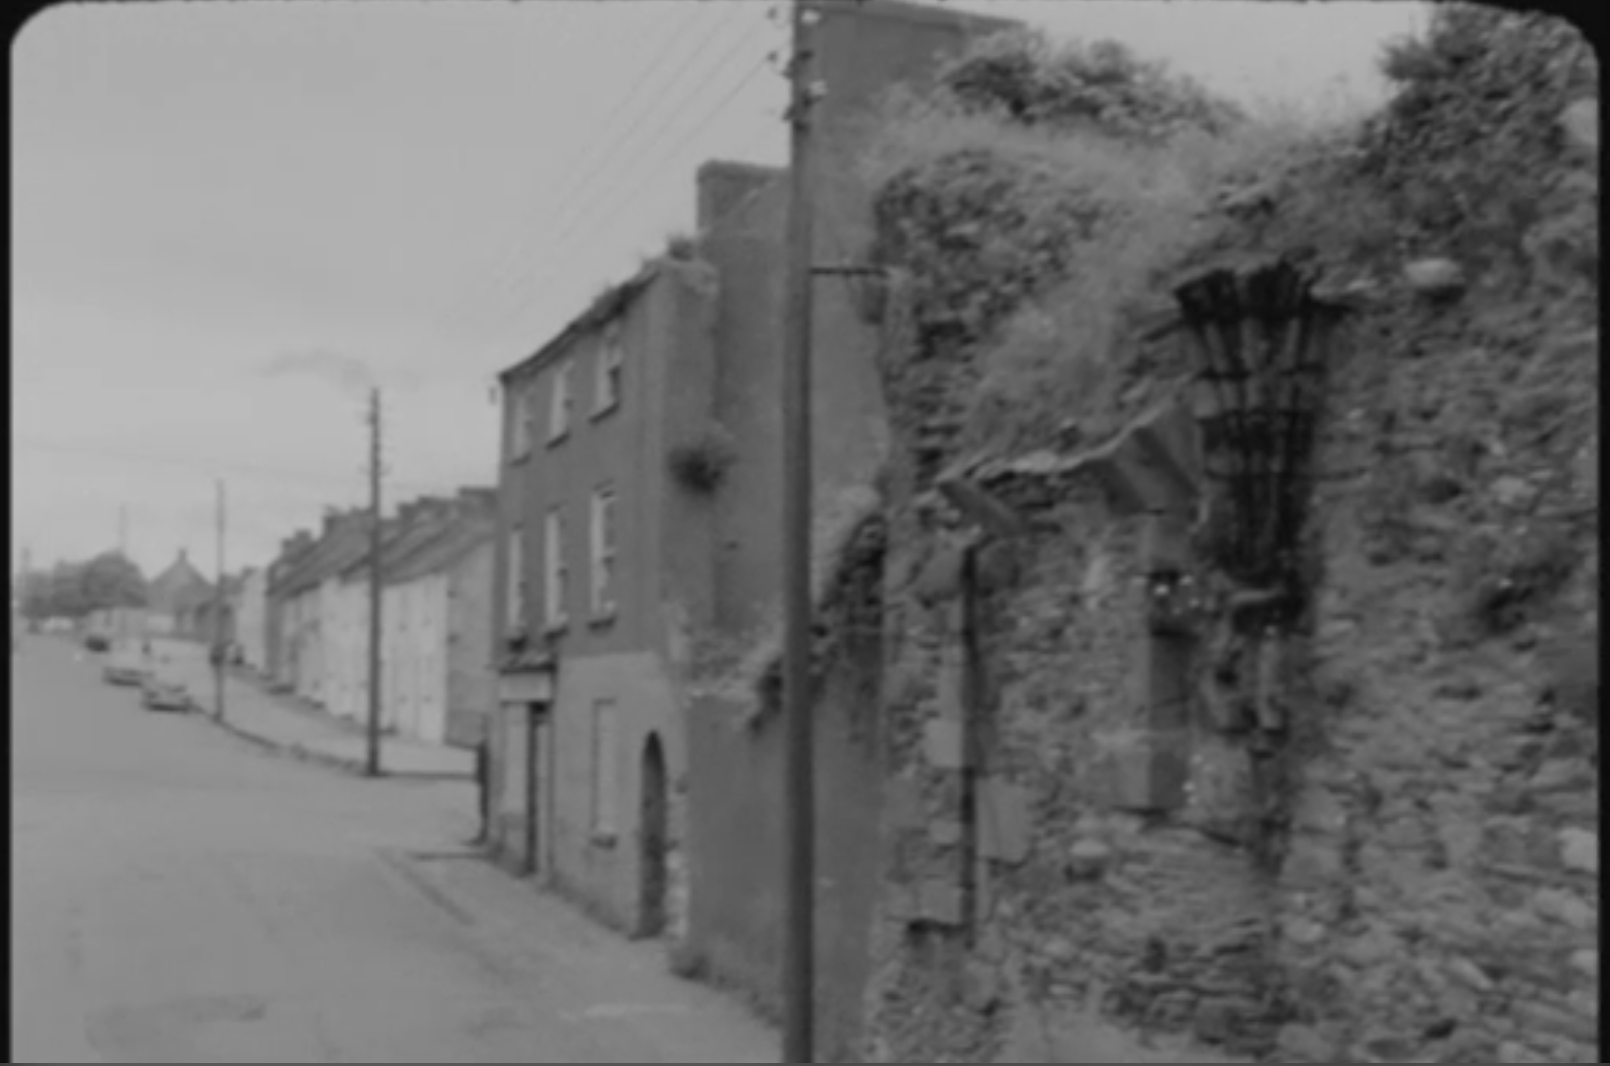 Still of English Planned Irish Towns film showing a street in Irishtown, County Wexford from RTÉ Archives (1969)